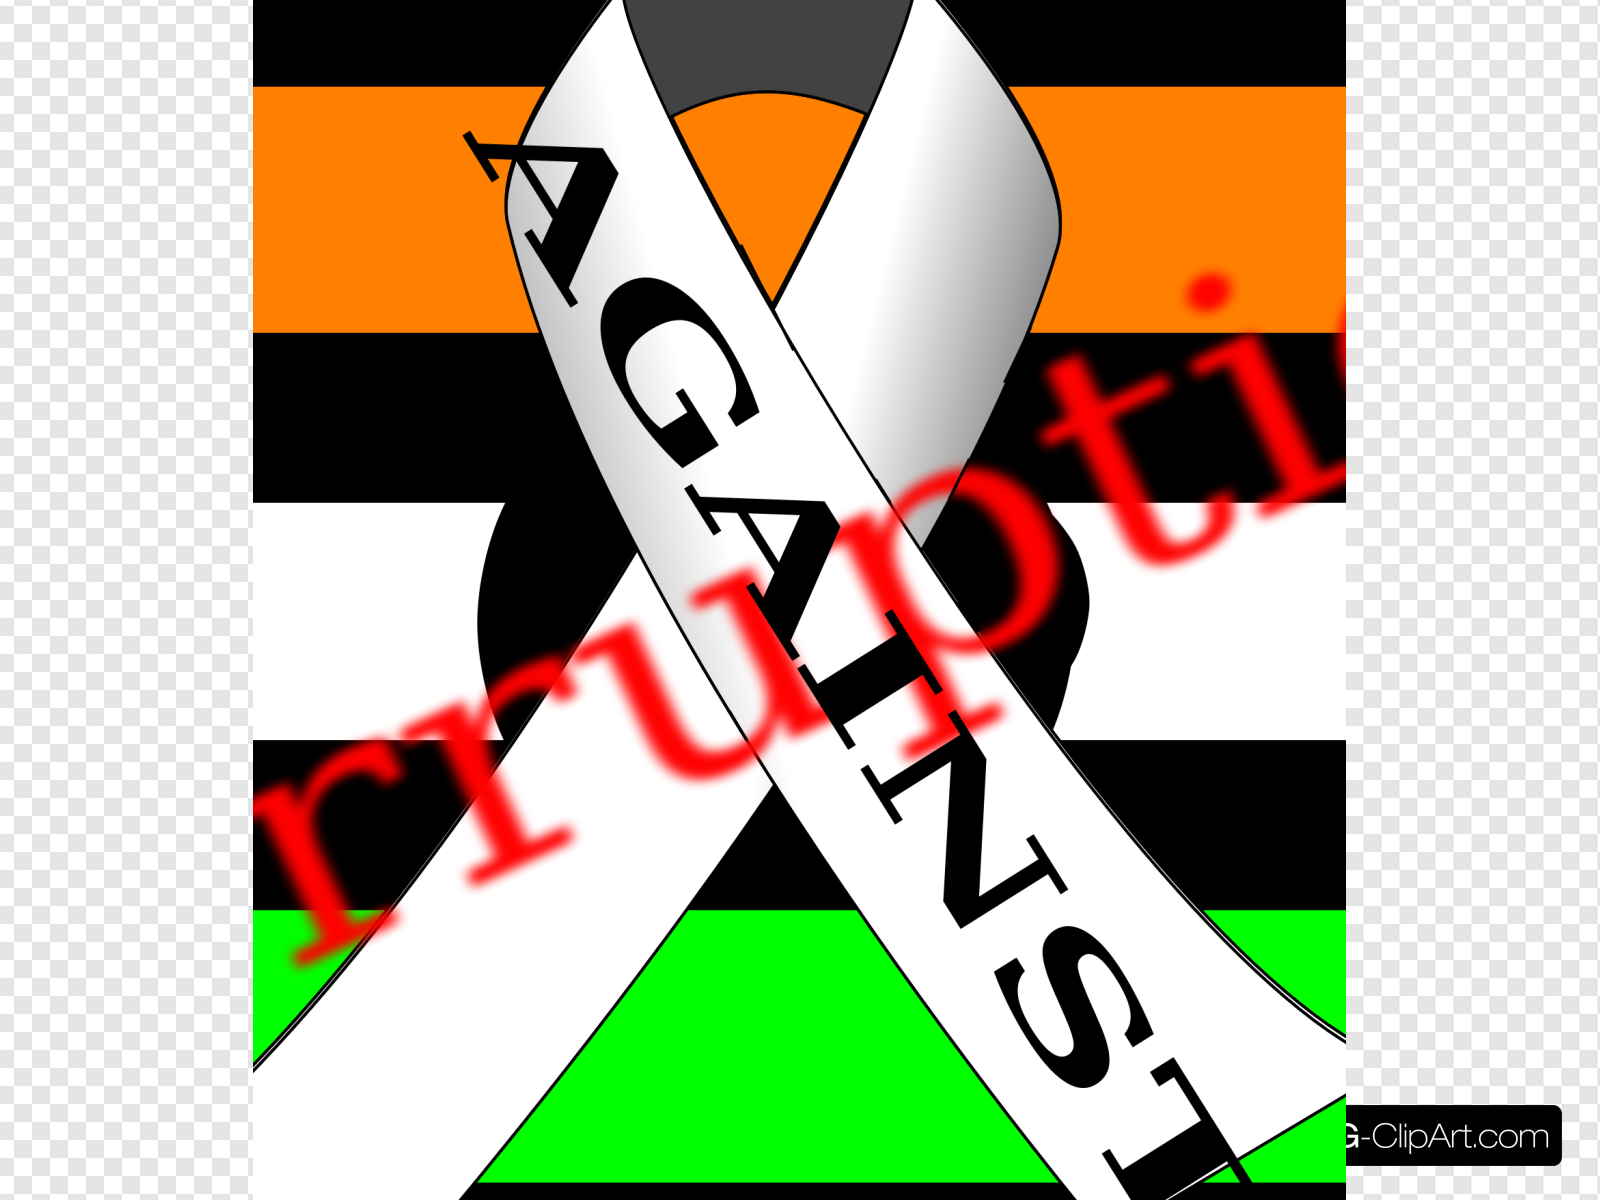 India Against Corruption Full Clip art, Icon and SVG.